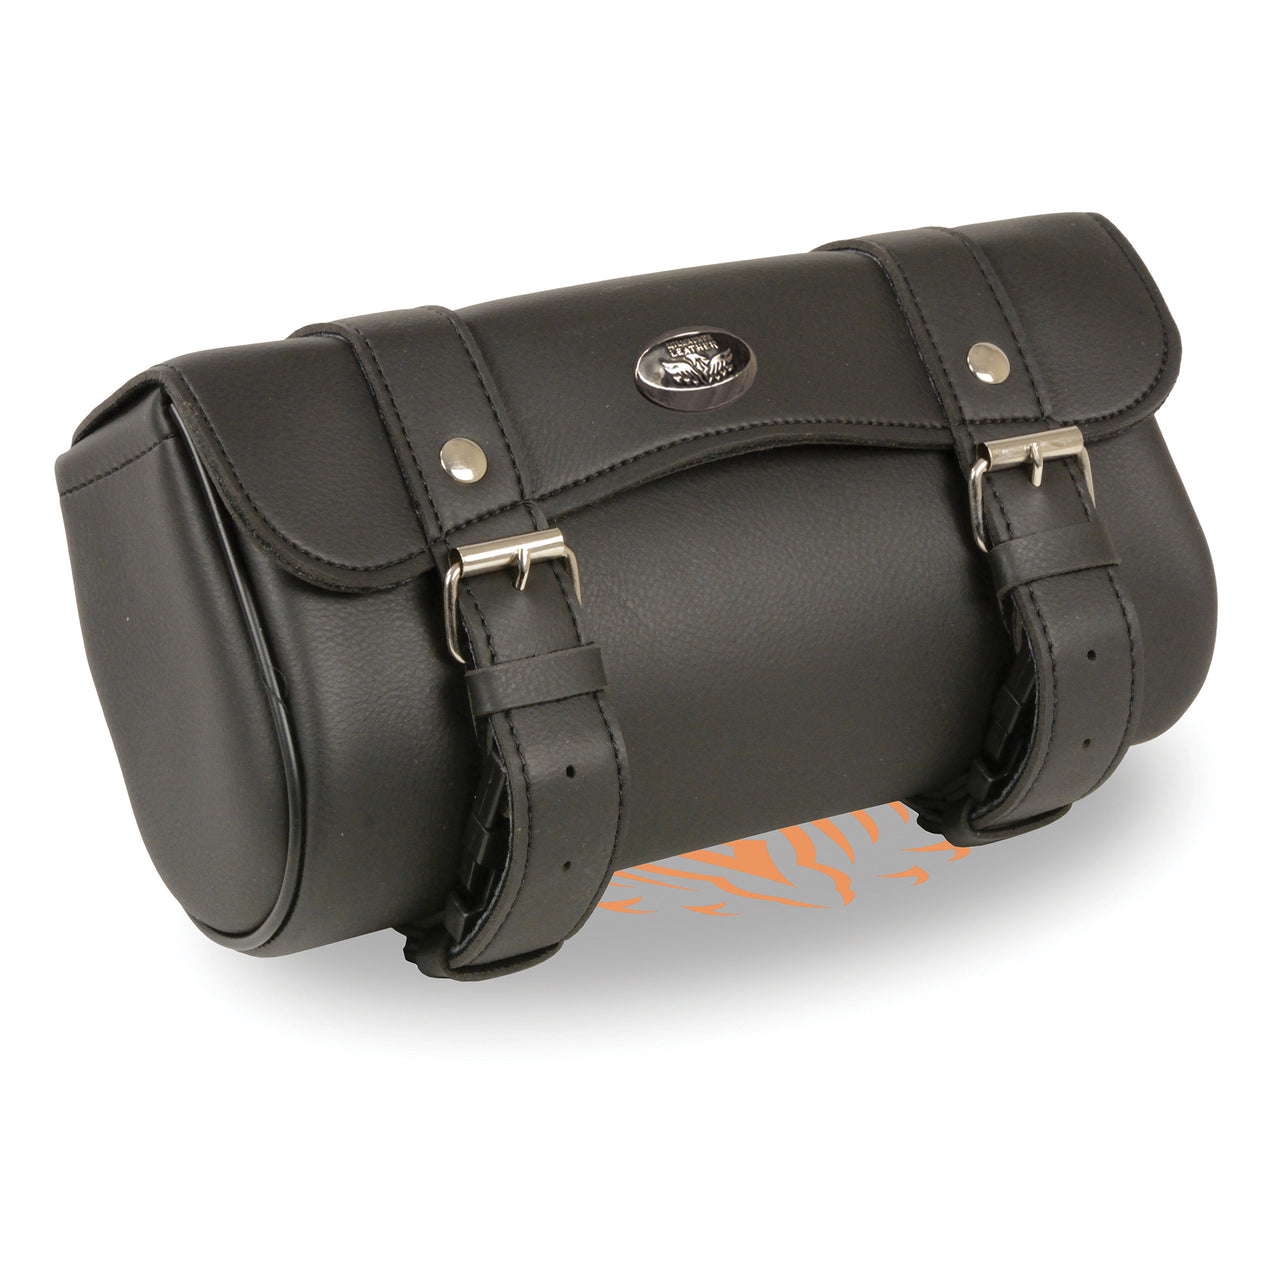 Large Double Strap PVC Tool Bag w/ Quick Release (12X4.5X3.5) - HighwayLeather